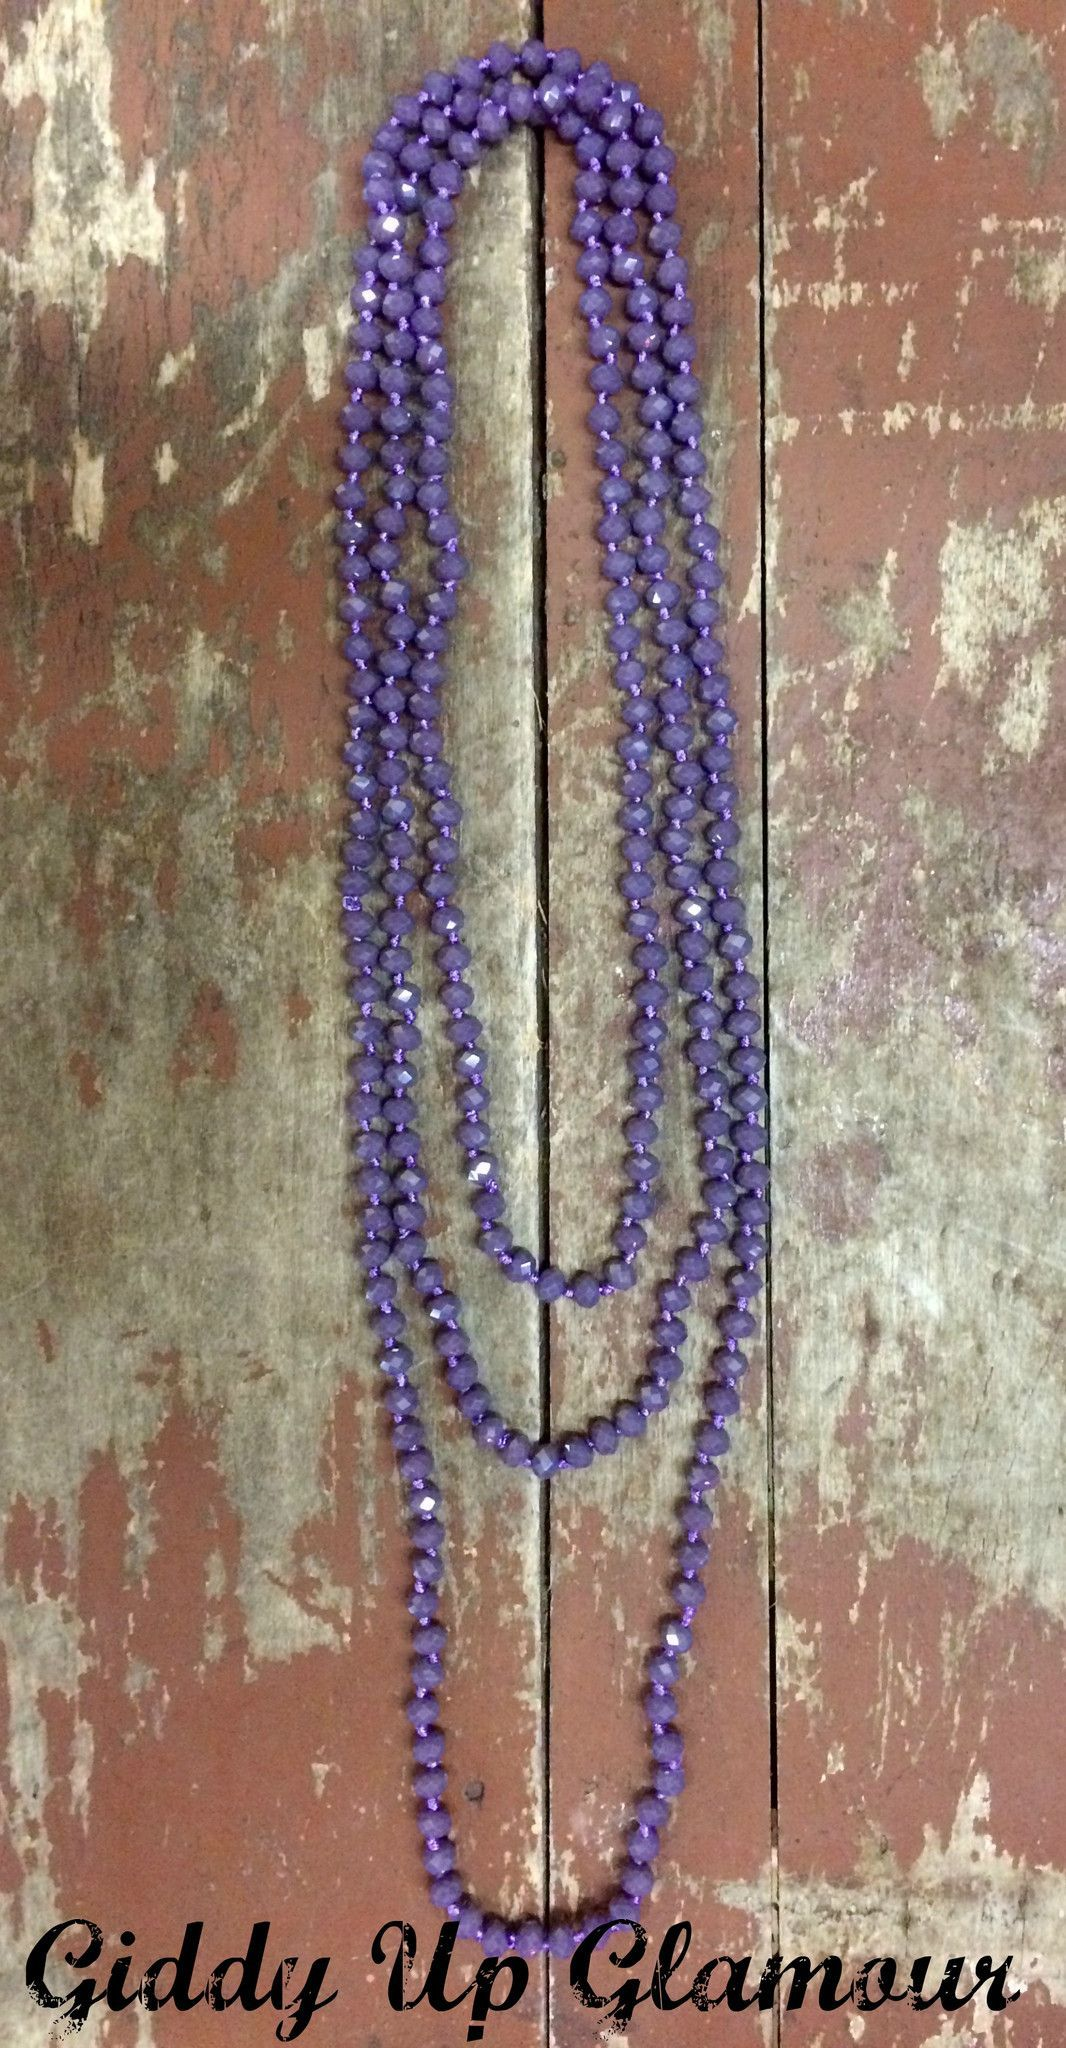 80 Inch Long Strand Crystal Necklace in Plum